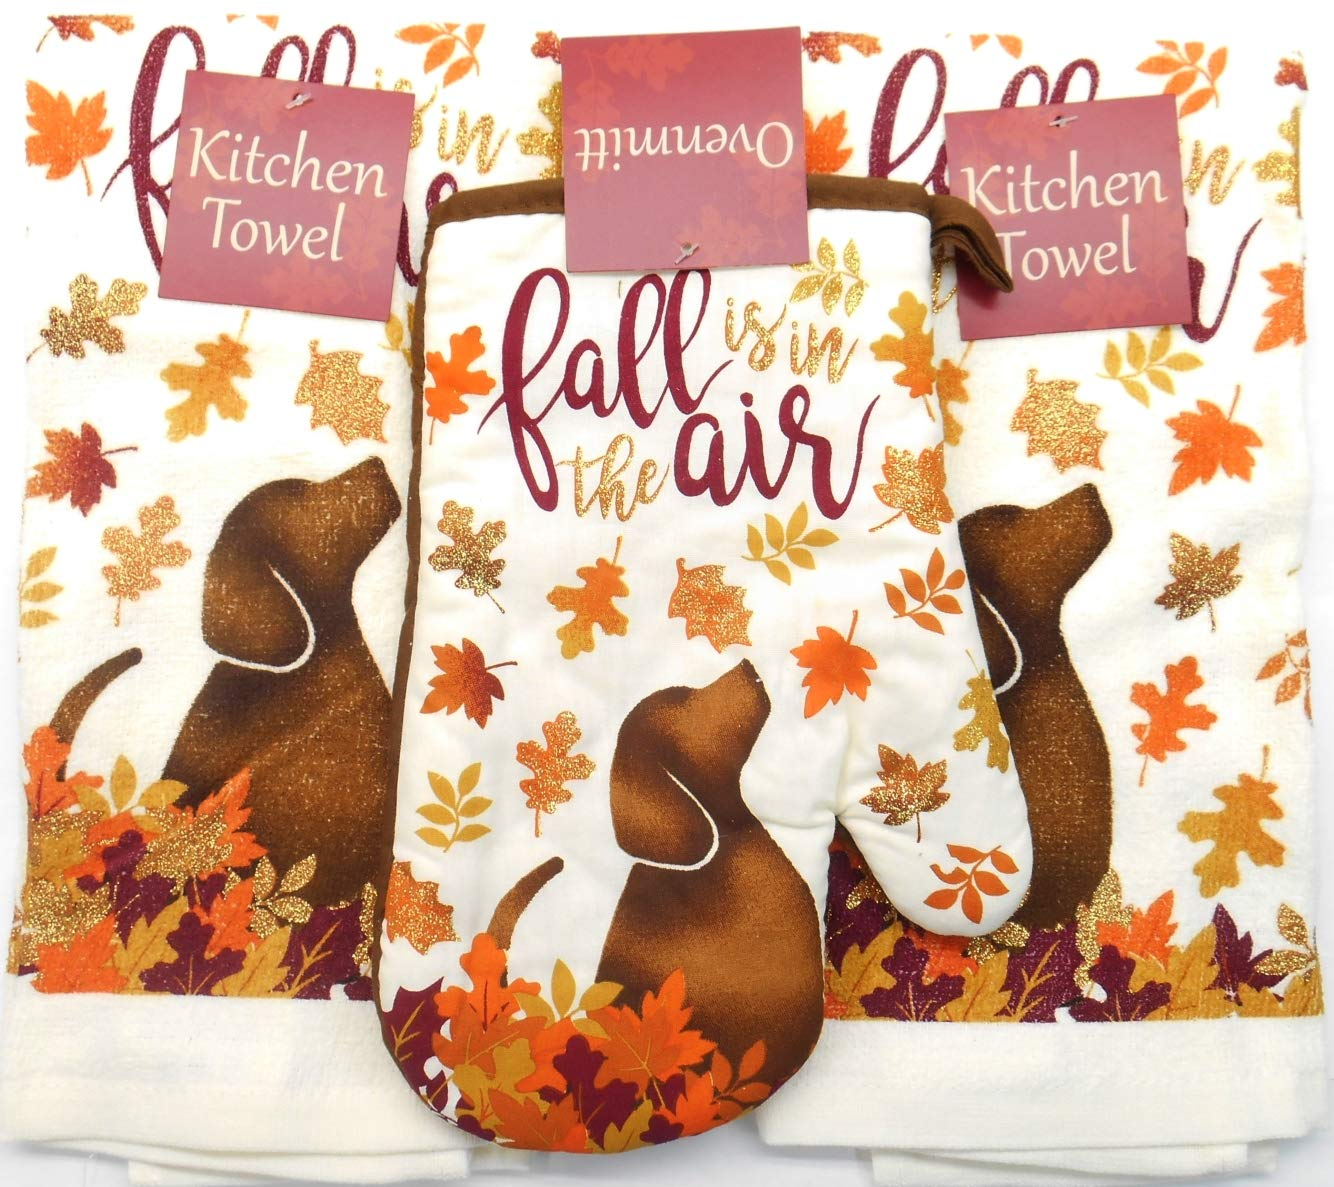 Fall Autumn Kitchen Towel Set is in the Air with Dog and Glitter. 3 Piece Bundle Set includes 2 Towels and 1 Ovenmit